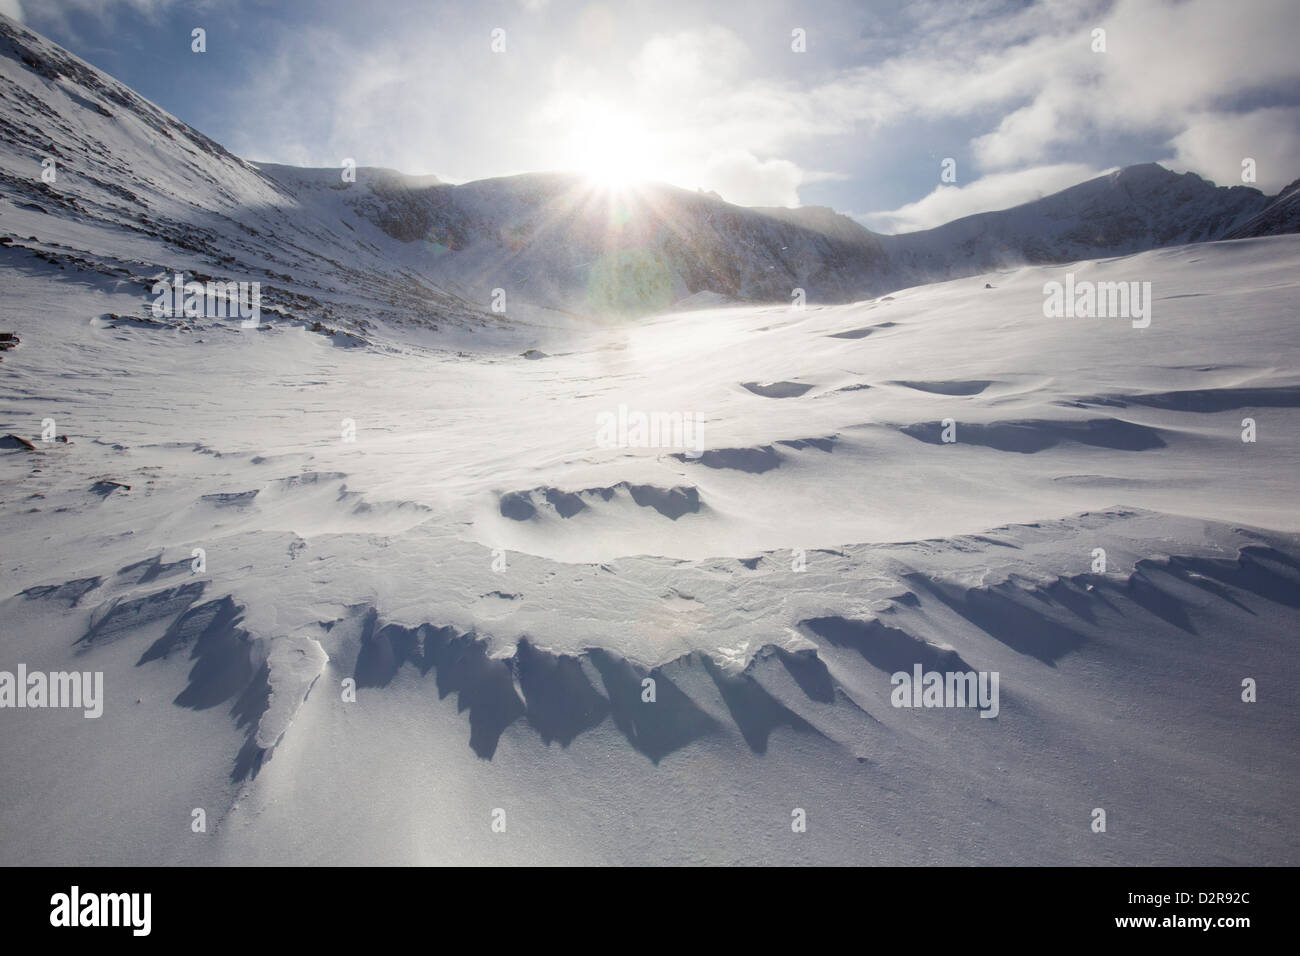 Sastrugi on windslab drifted snow in Coire an Sneachda in the Cairngorm mountains, Scotland, UK. - Stock Image